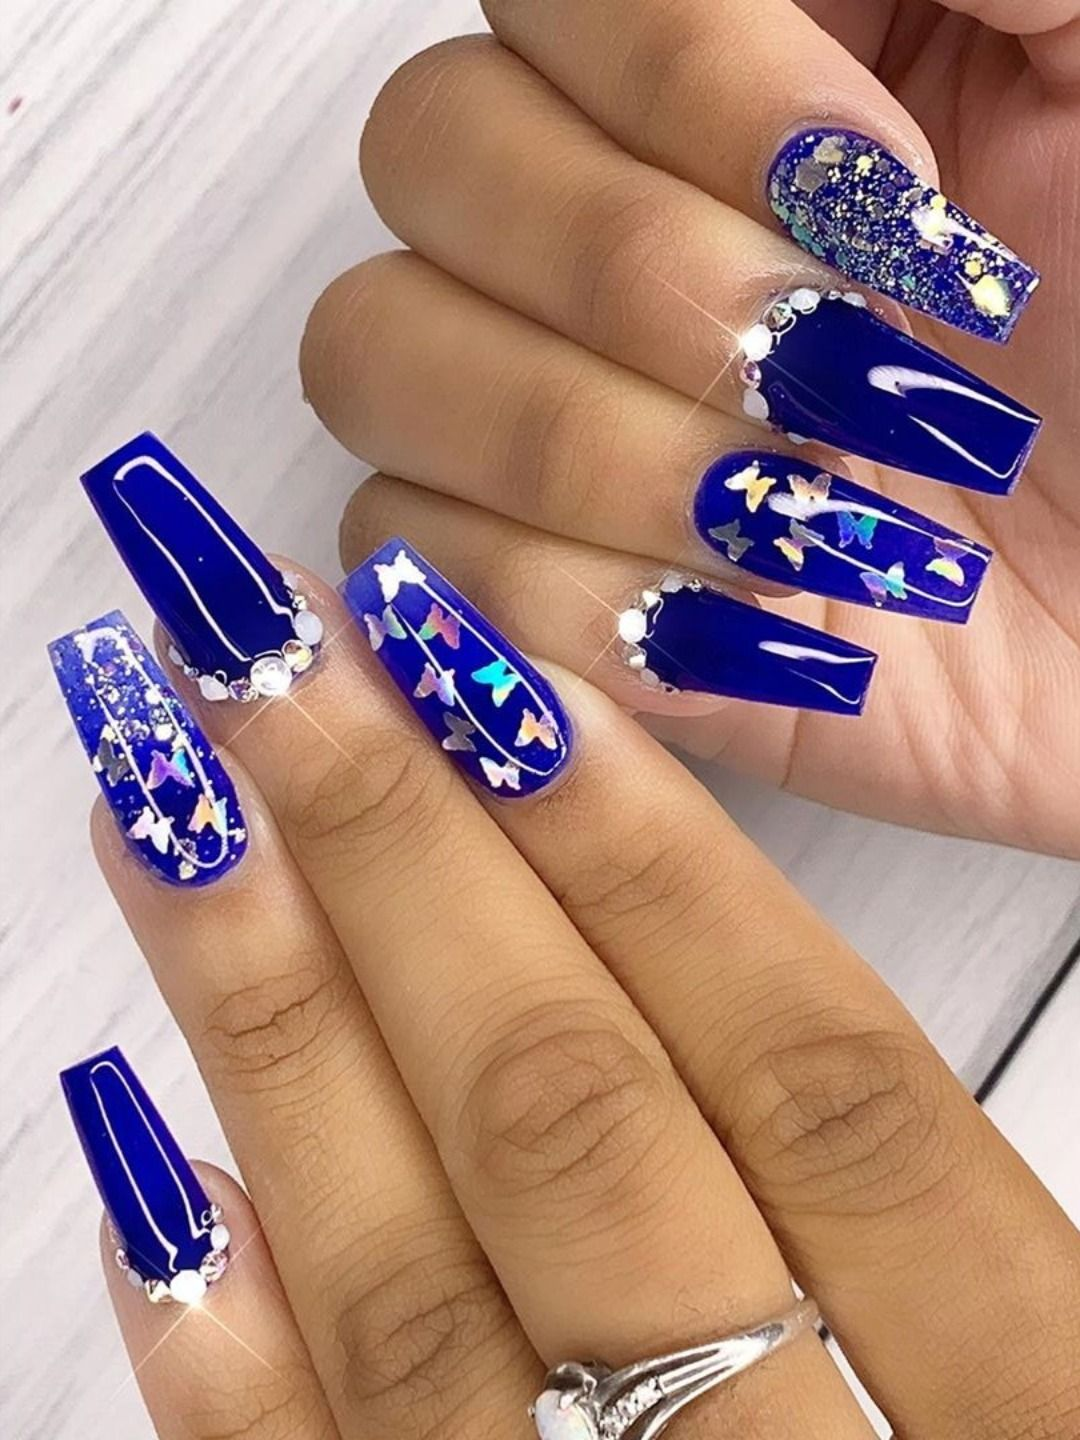 120 Best Coffin Nails Ideas That Suit Everyone In 2020 Blue Acrylic Nails Blue Glitter Nails Rhinestone Nails